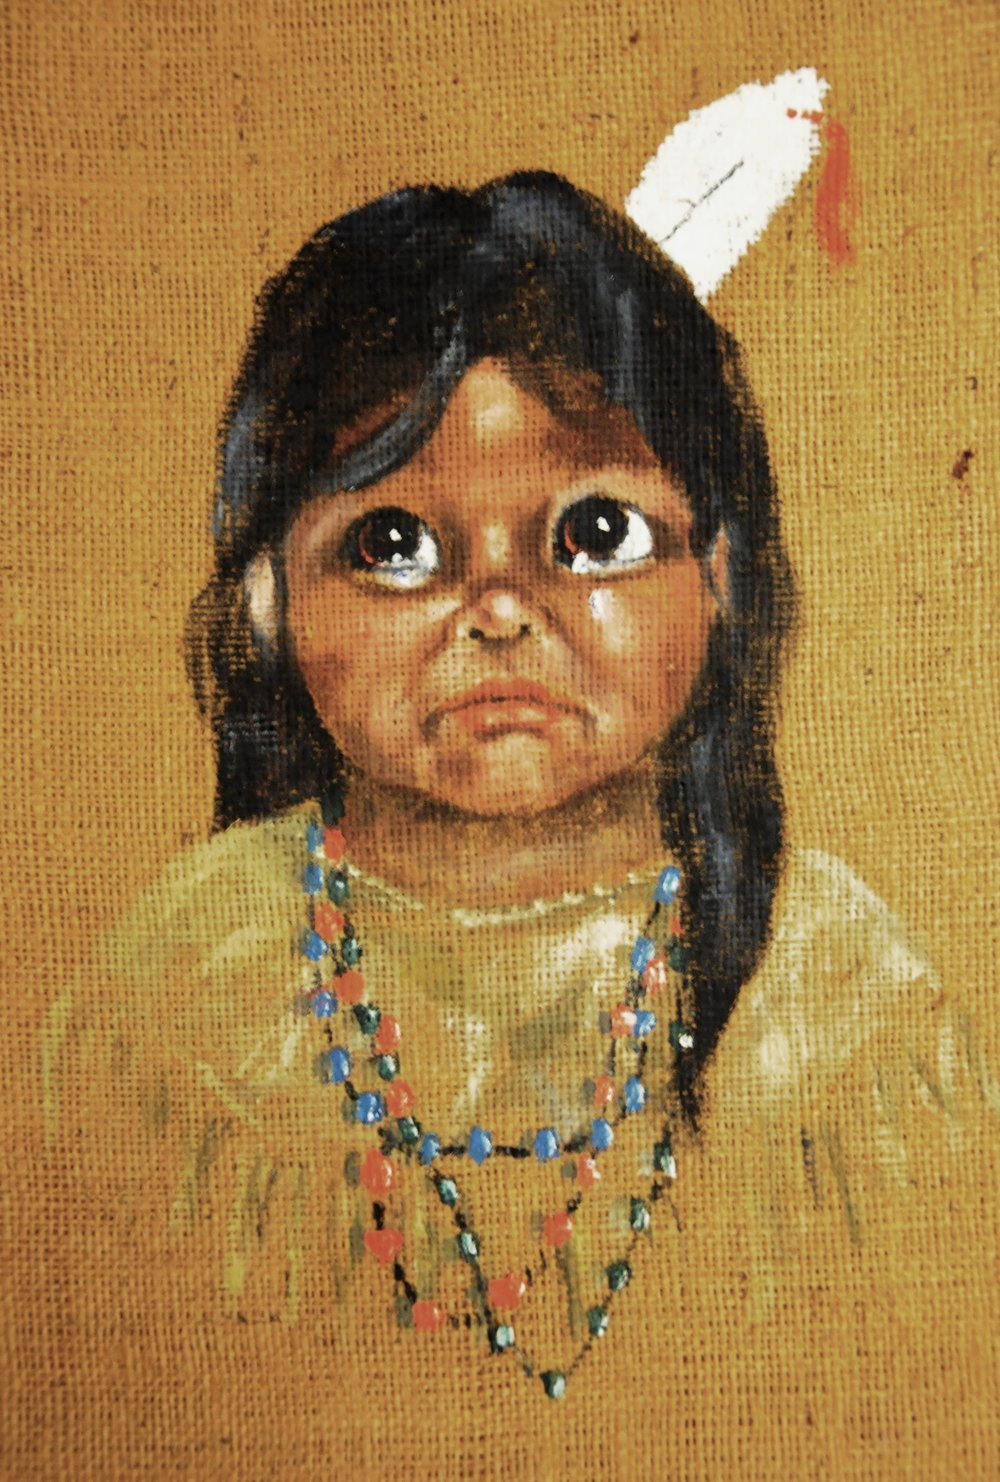 Untitled (Sad Child), c. 1960s, Fran Jenkins, acrylic on burlap